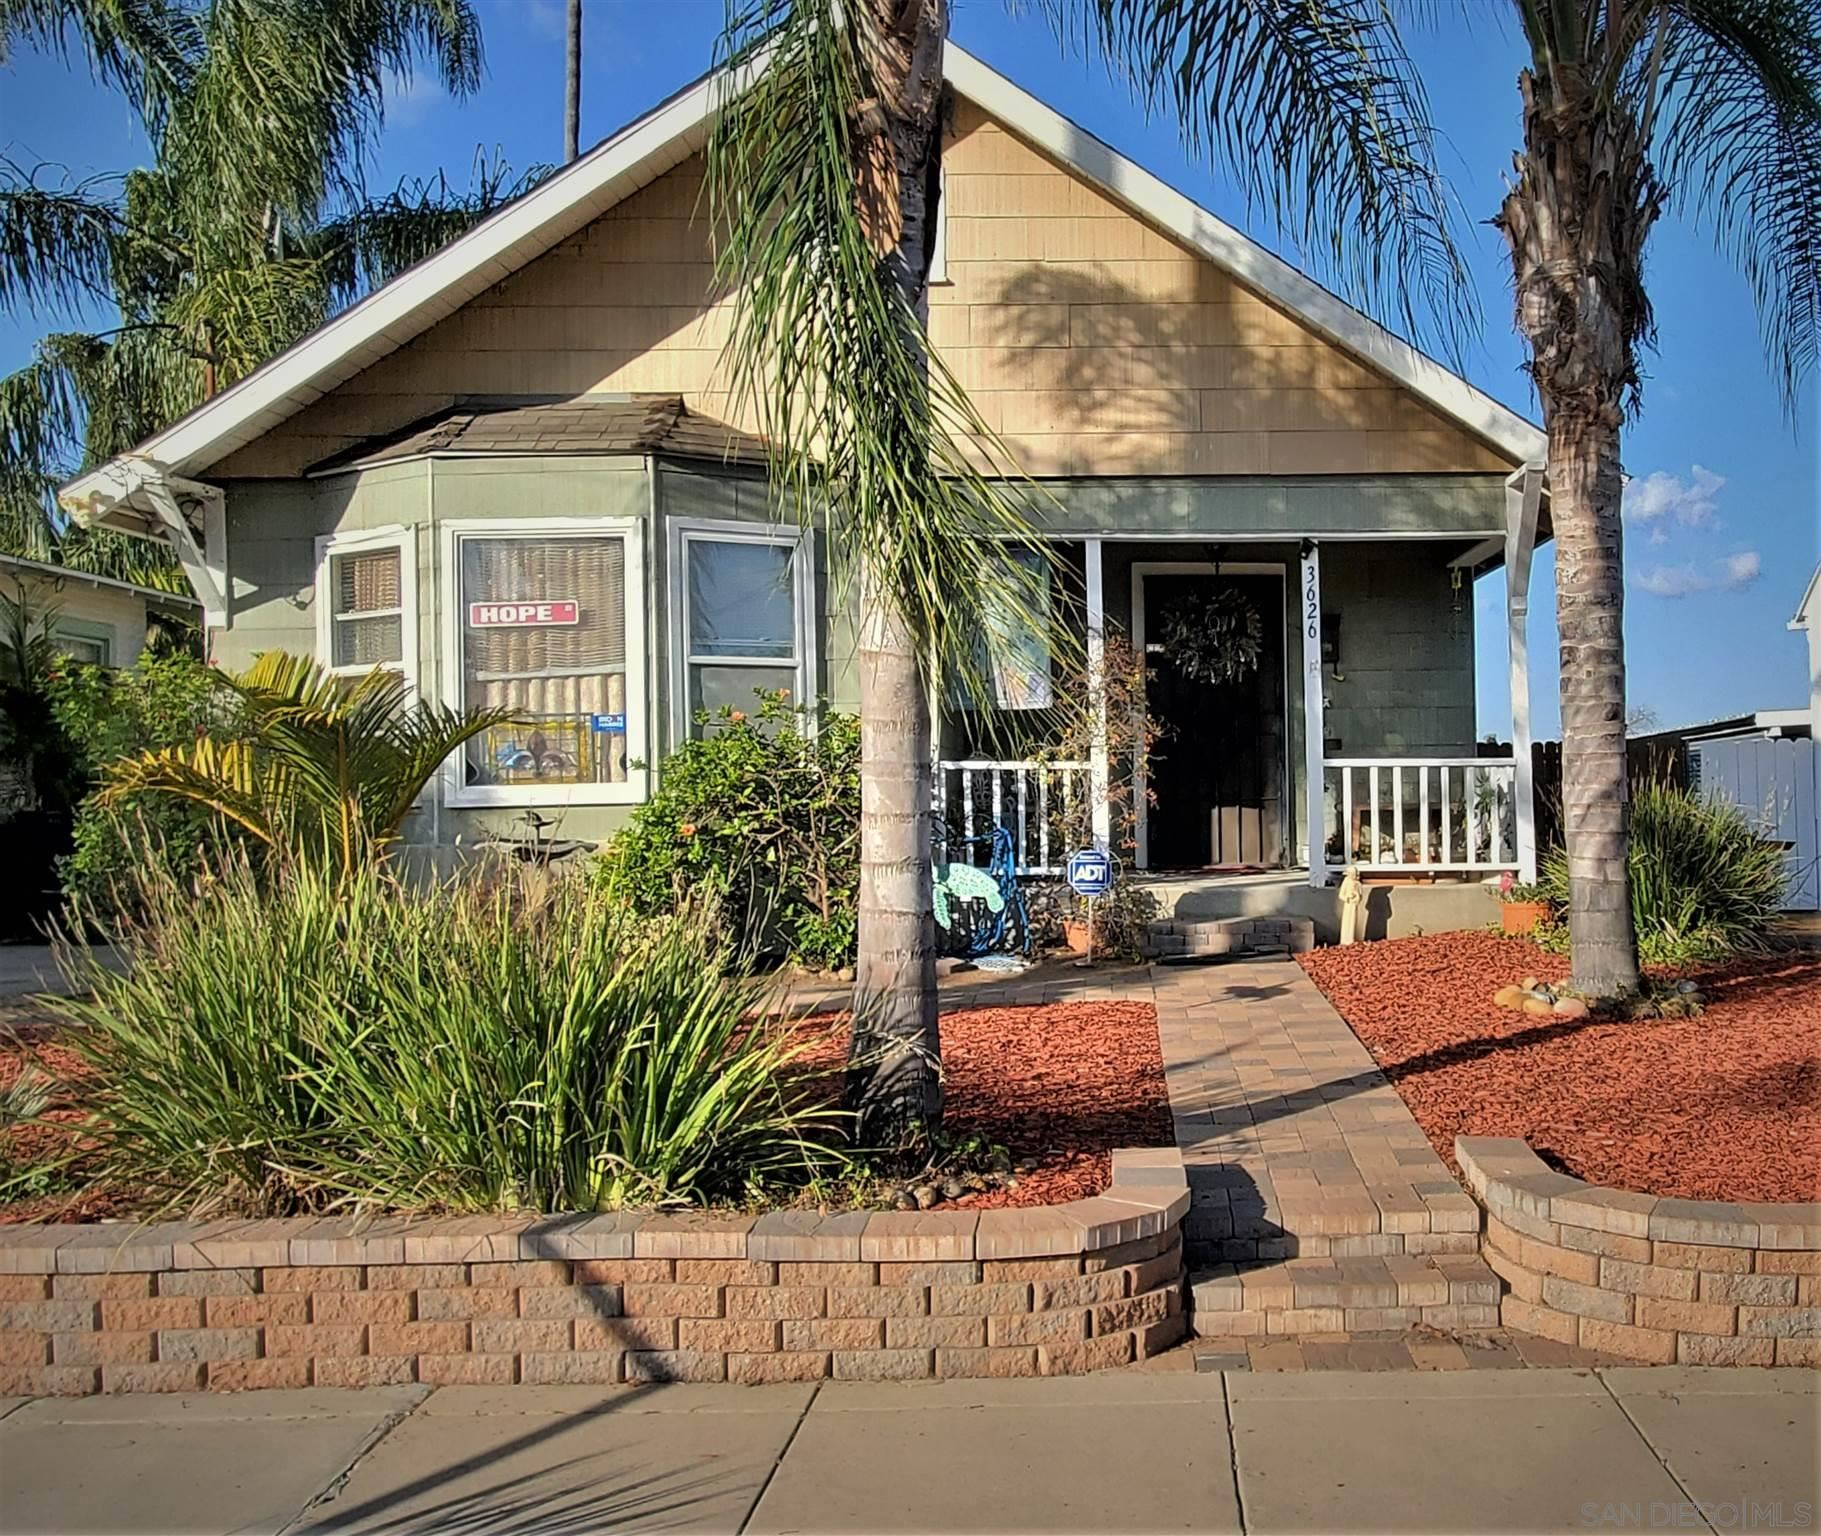 Photo for 3626 Copley Ave, San Diego, CA 92116 (MLS # 210000152)